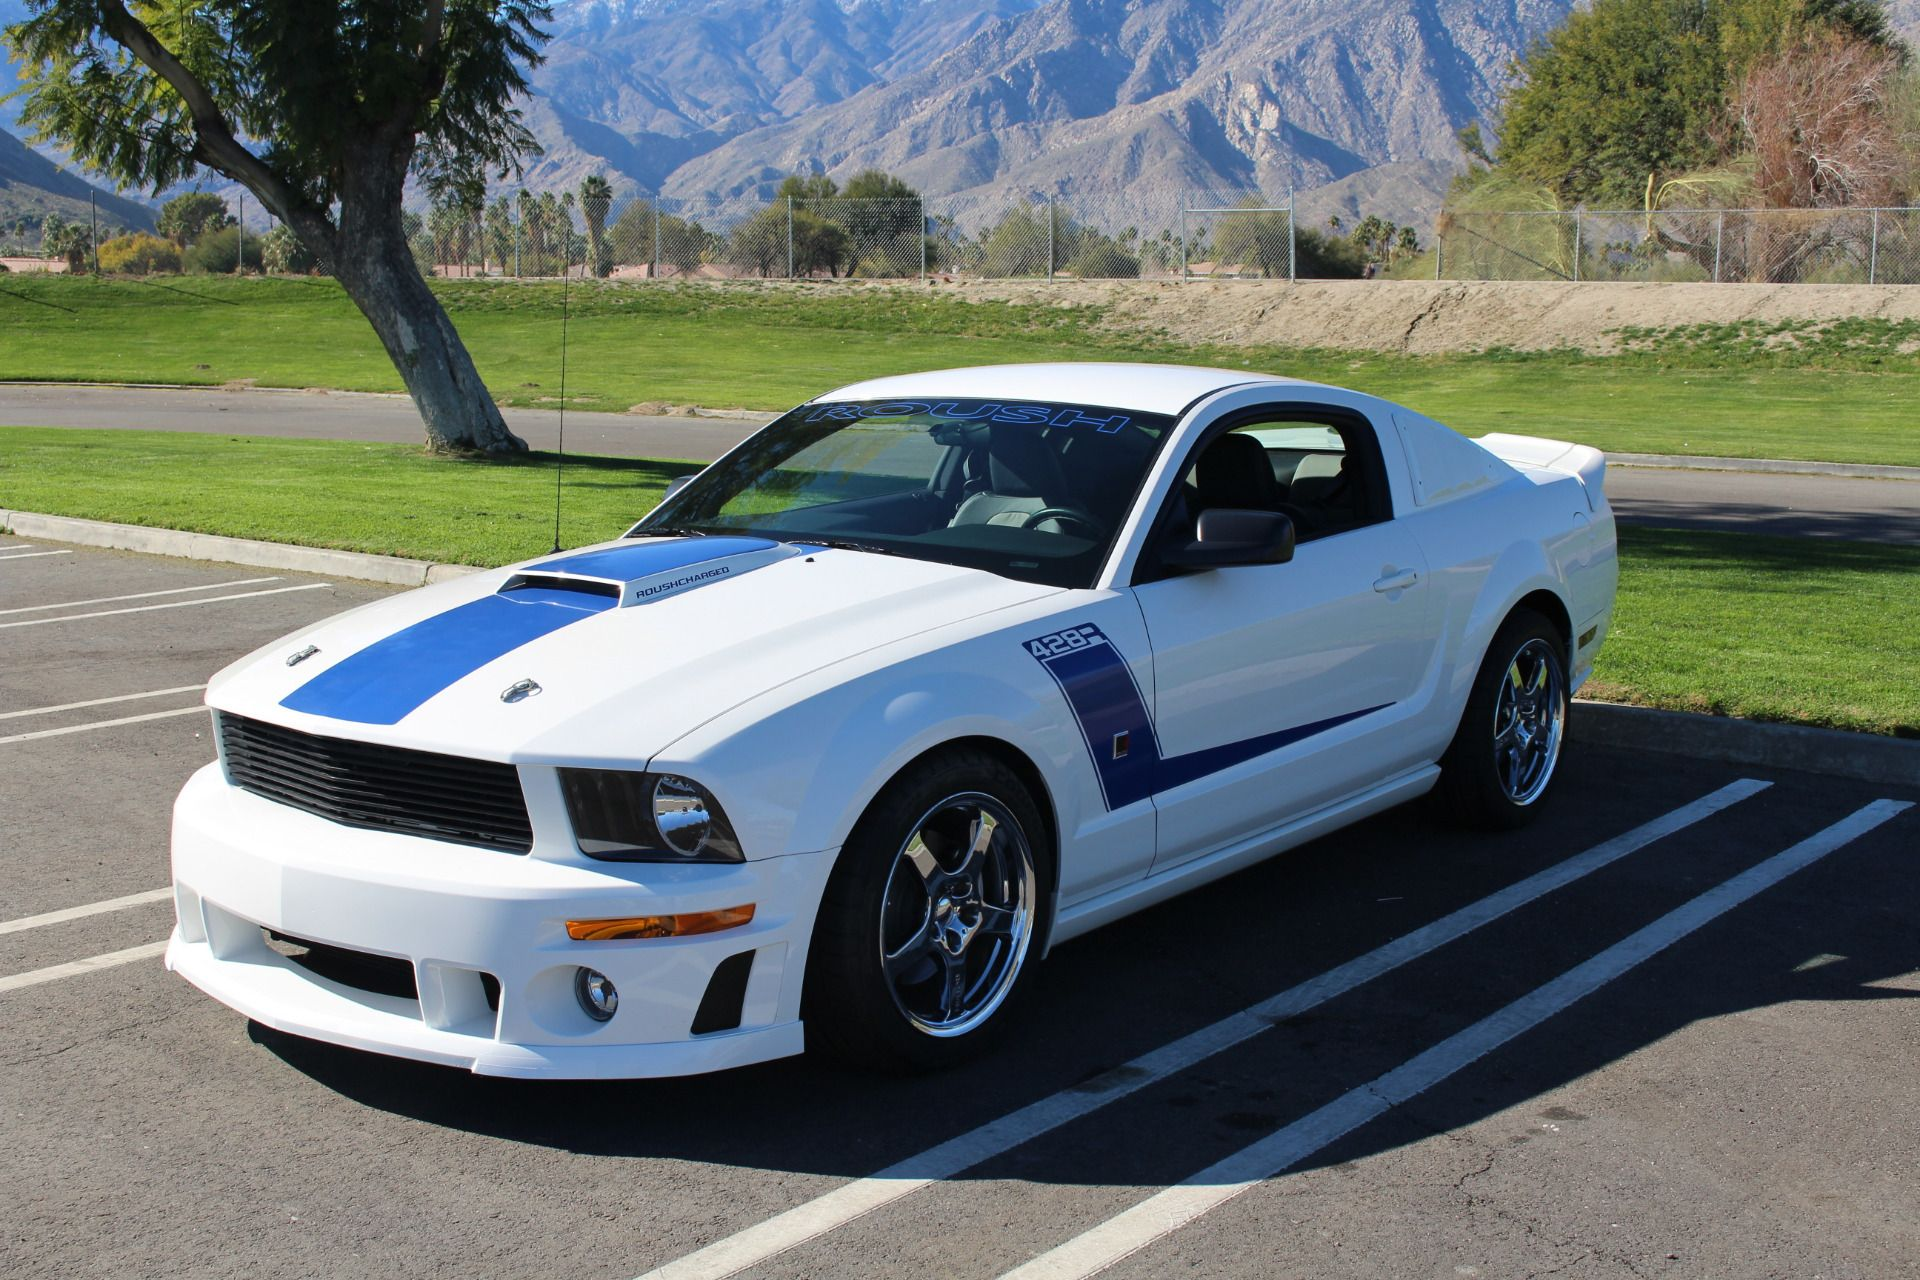 What Is A Roush Mustang? - What Is A Roush Mustang?